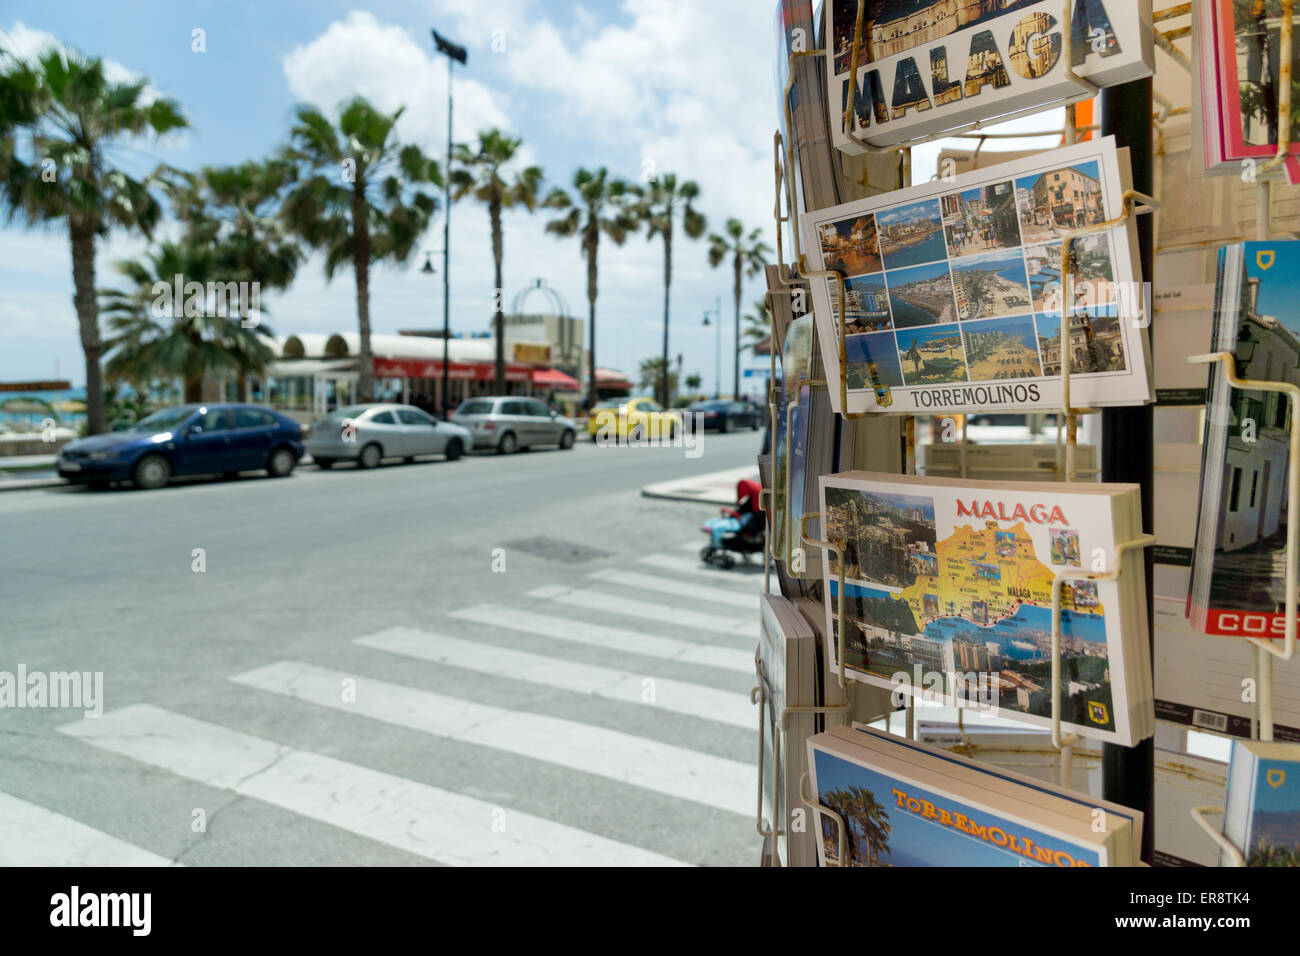 A postcard rack of postcards of Malaga and Torremolinos on the seafront in Torremolinos, Malaga, Spain - Stock Image